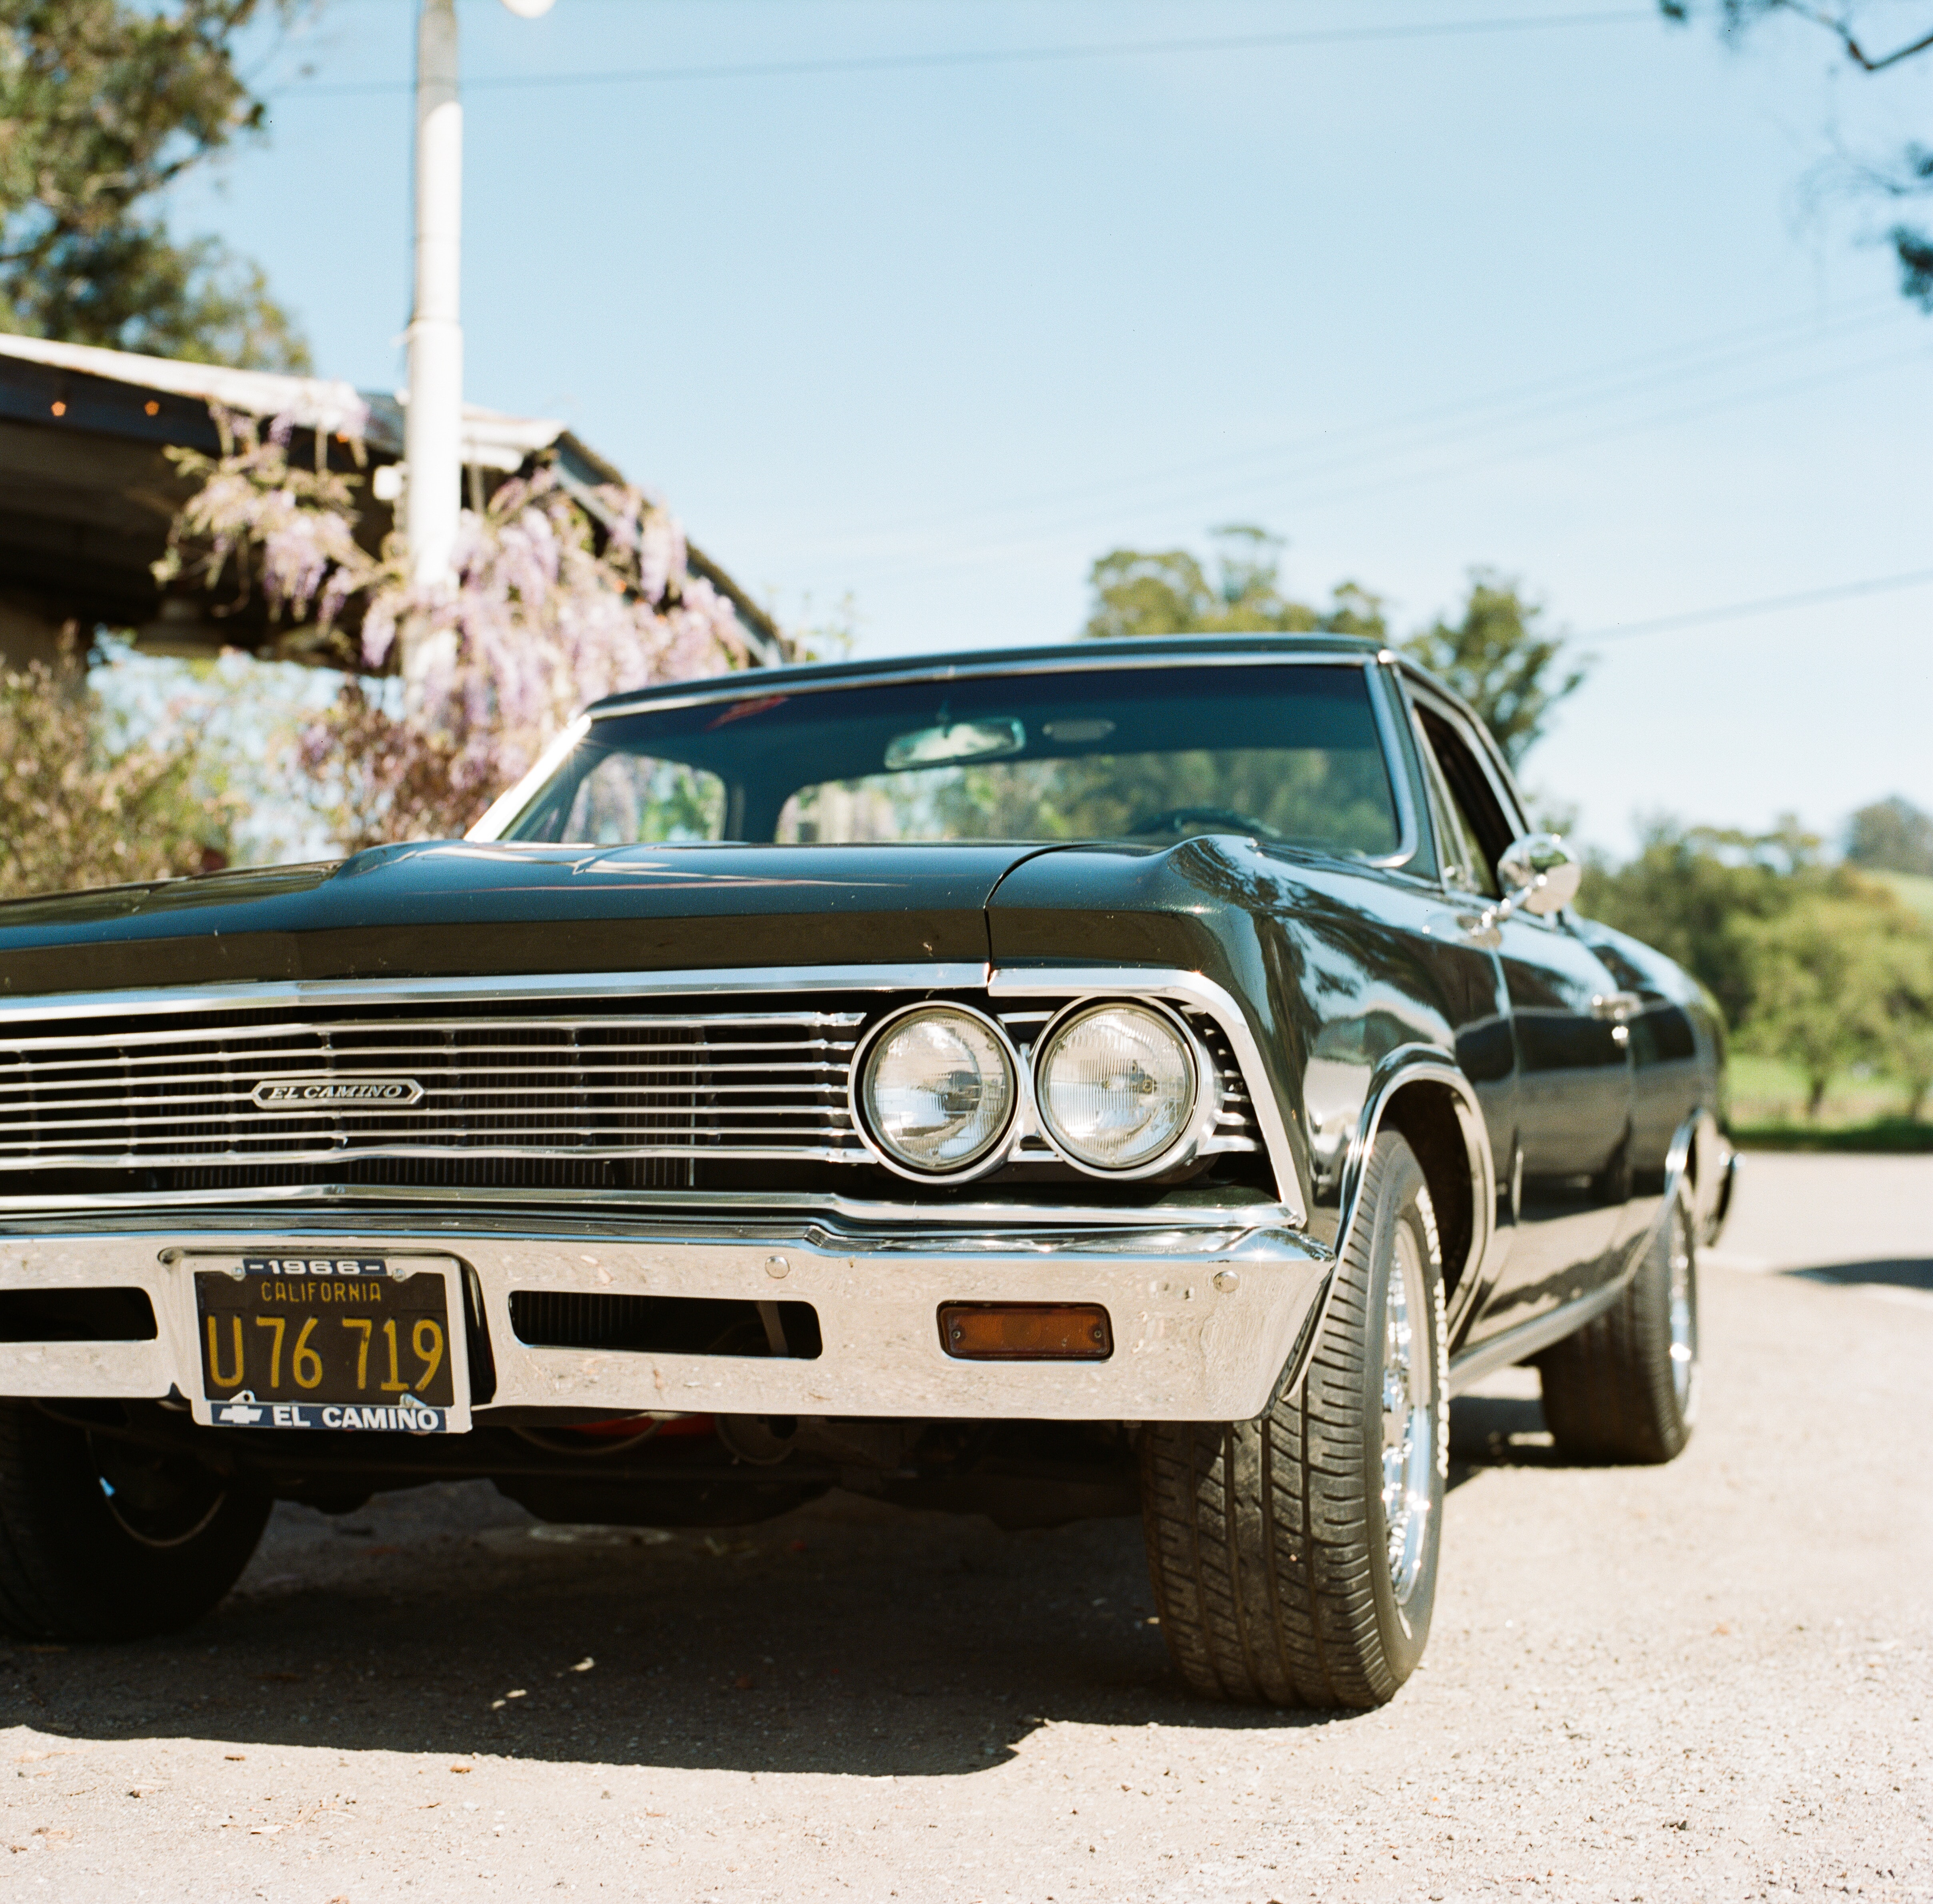 The front view of an el Camino impala showing the headlights and the bumper